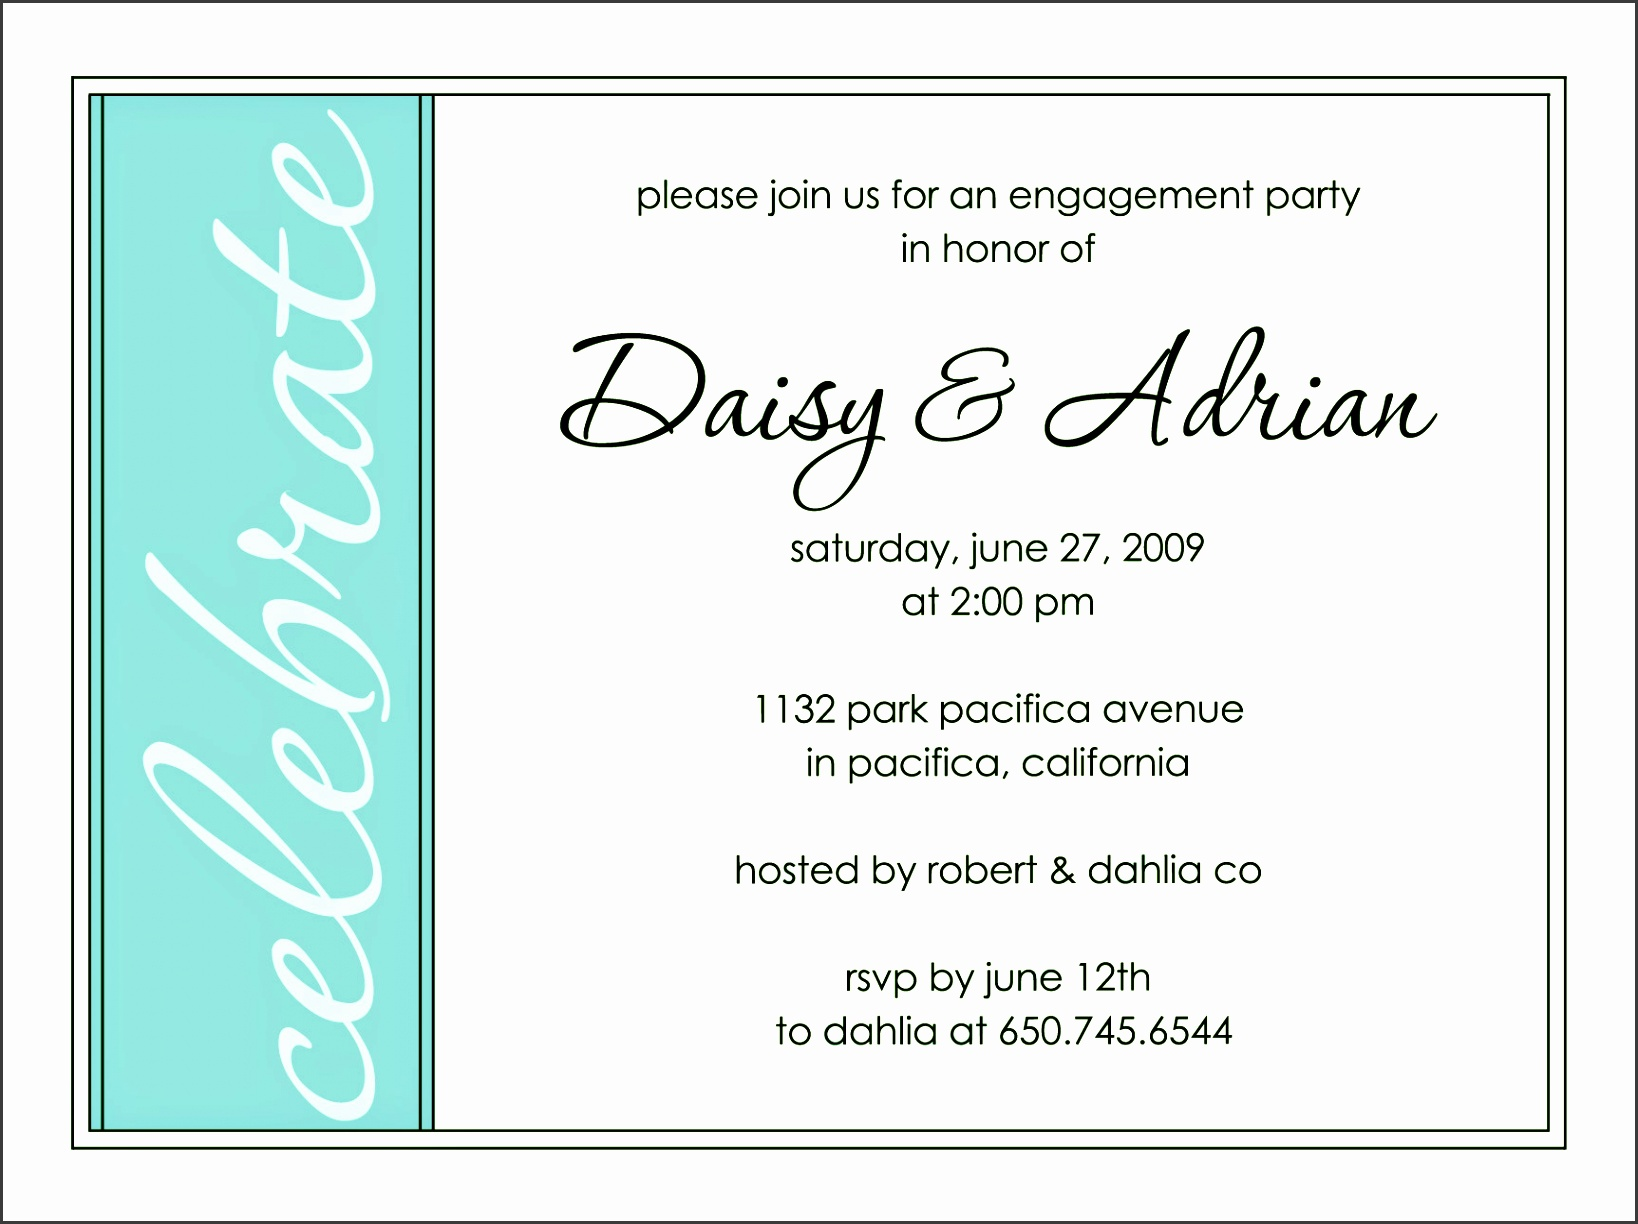 engagement party invitation wording with catchy surroundings of your party invitation cards invitation card and best arrangement 12 source pÑ xabay cÐ m